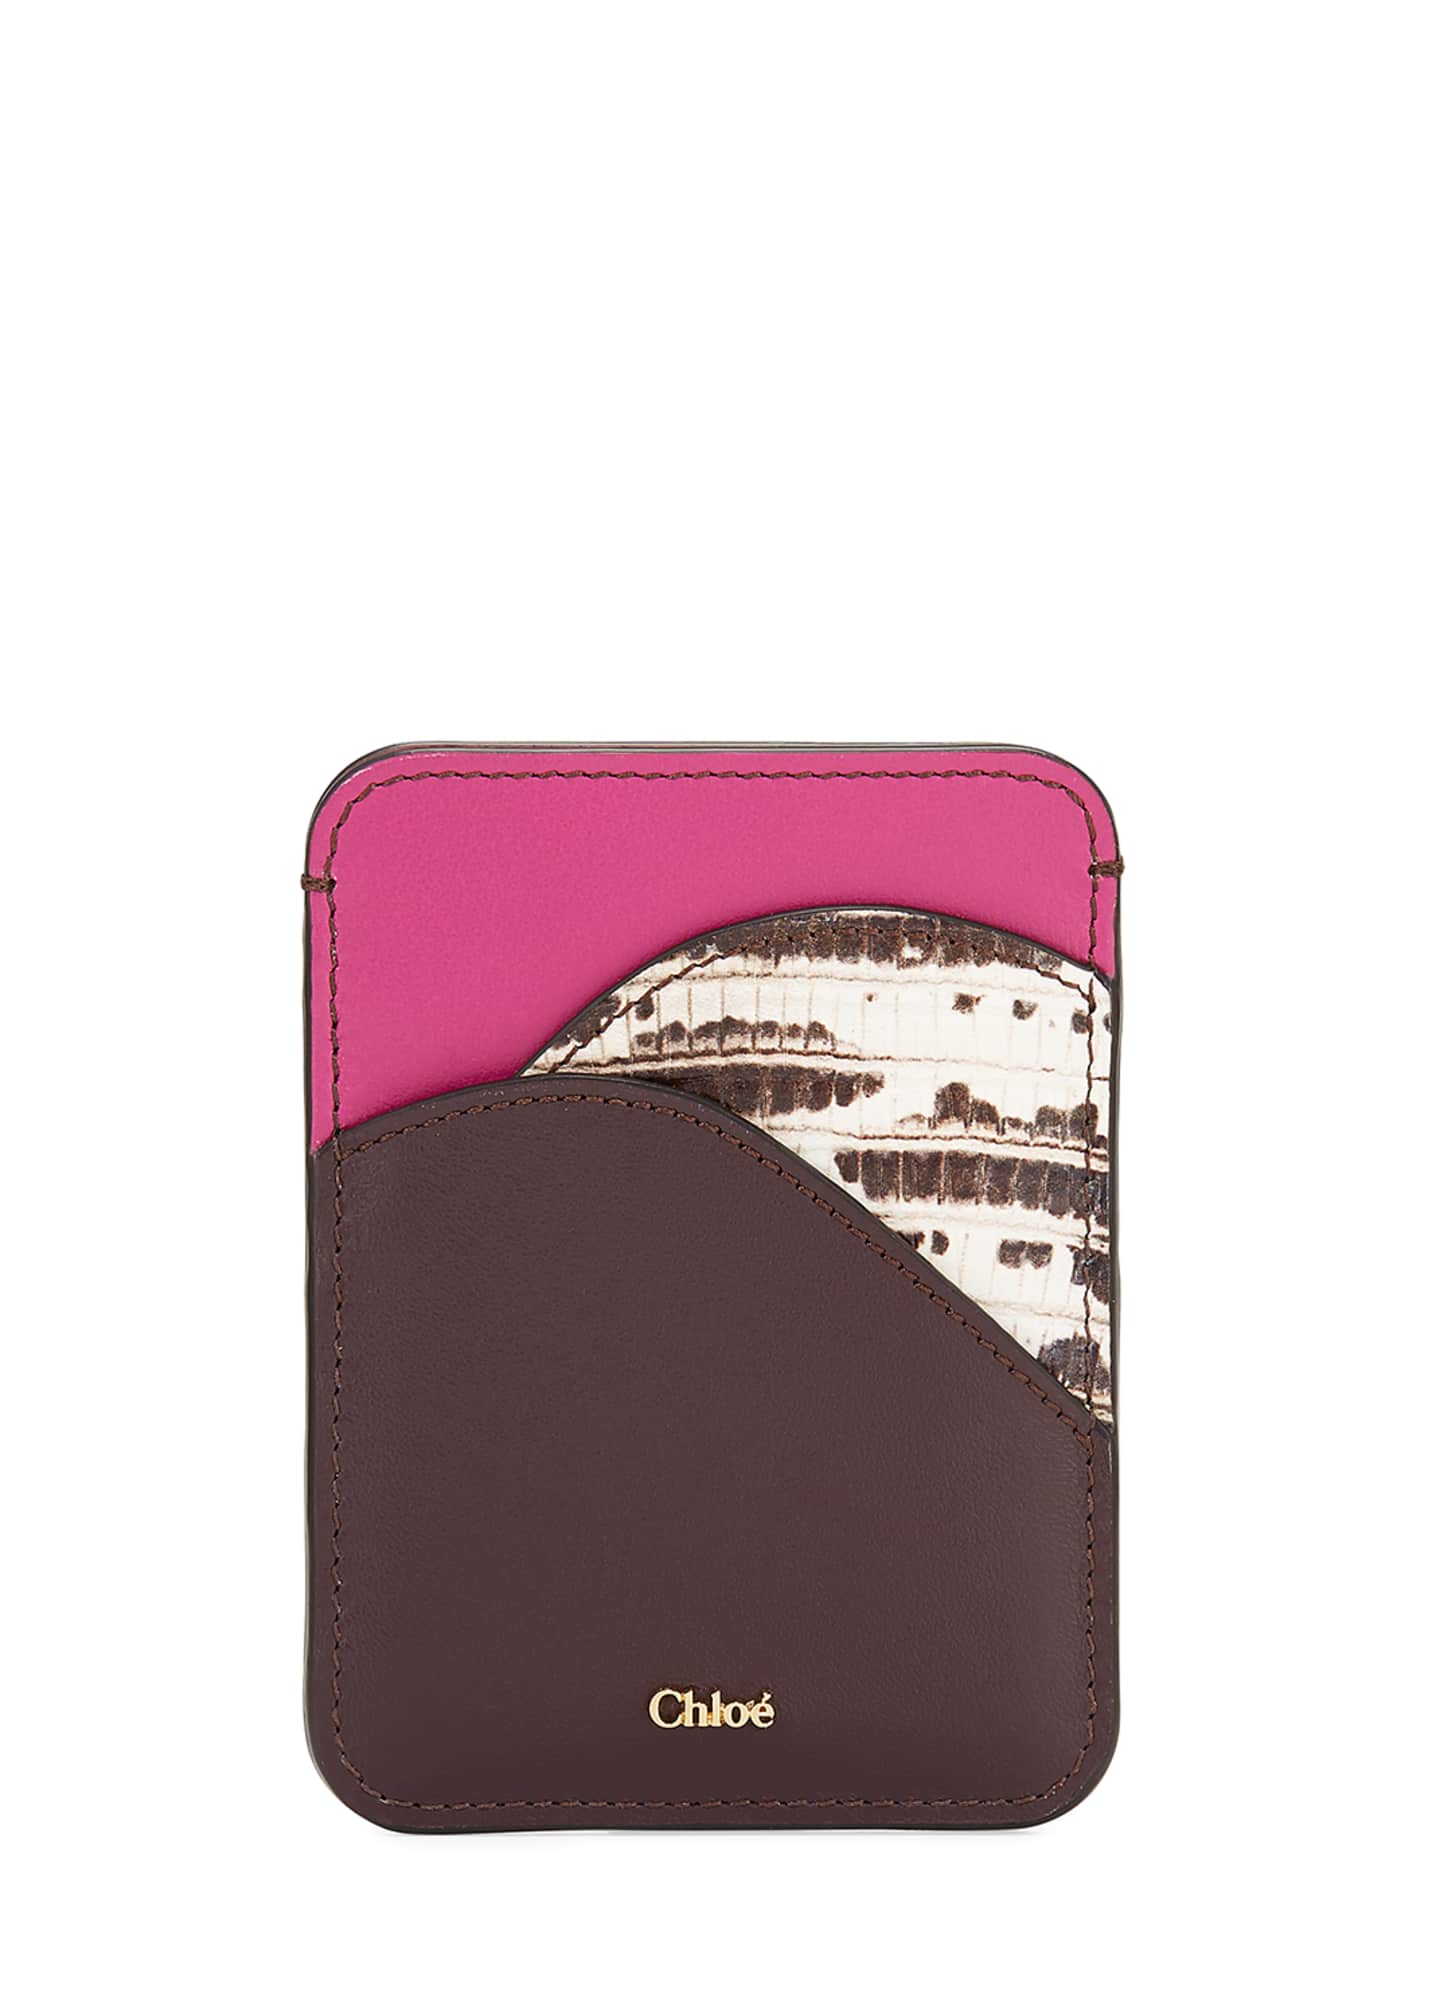 Chloe Walden Smooth and Lizard-Embossed Card Holder